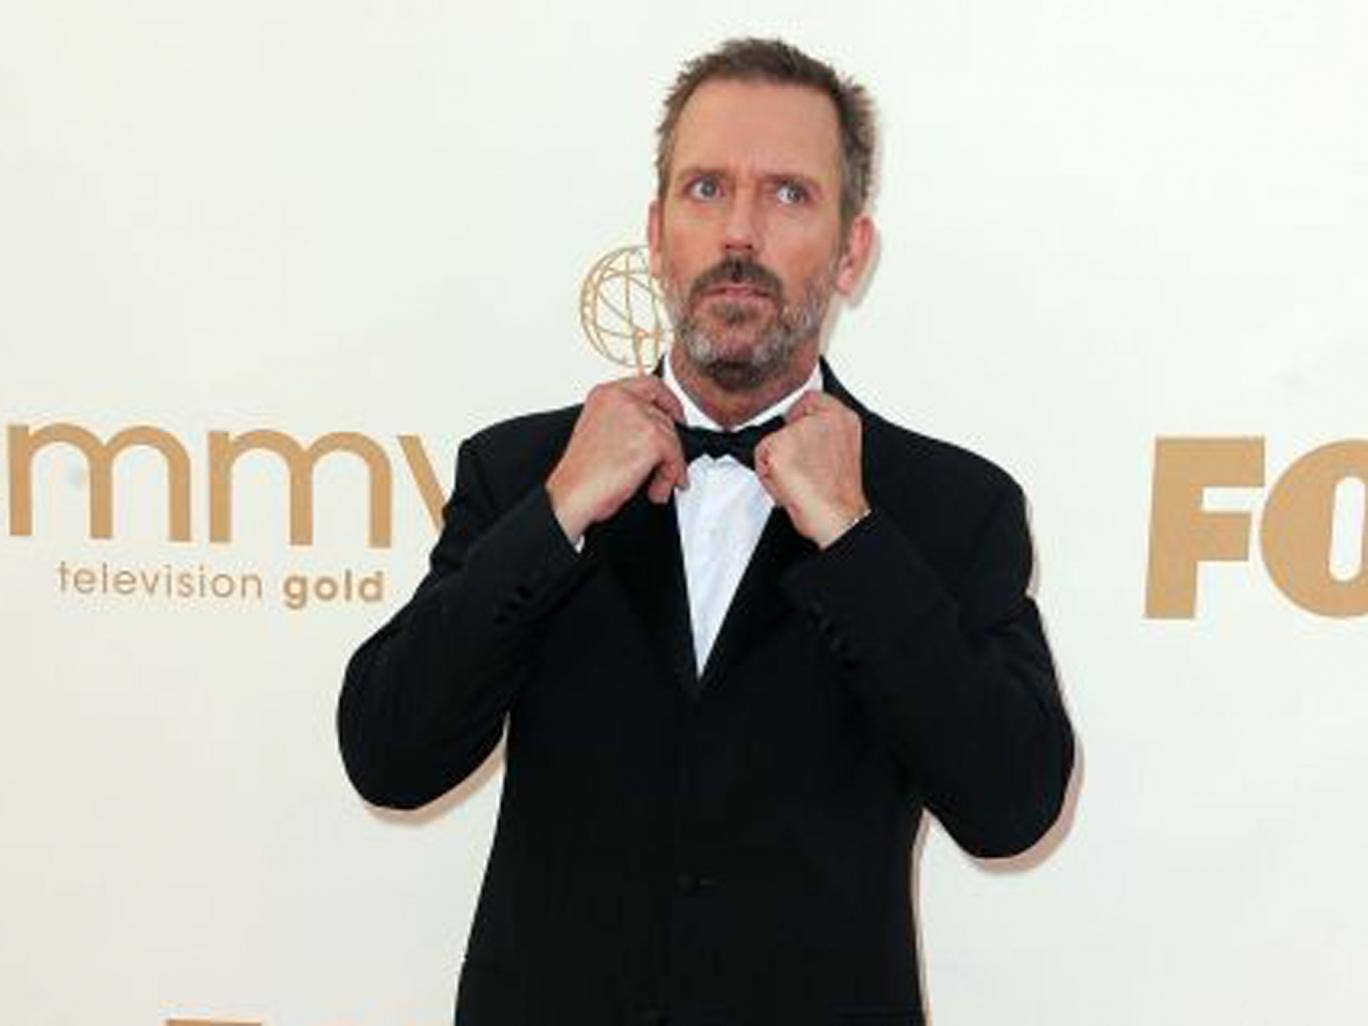 """Hugh Laurie</br> Age: 53</br> Estimated wealth: £15m to £20m</br> Biggest Hits: Blackadder, Jeeves and Wooster, House, The Oranges, Let Them Talk (album)</br> Quote: """"I don't have a single complete show or movie or anything else that I could look at and s"""